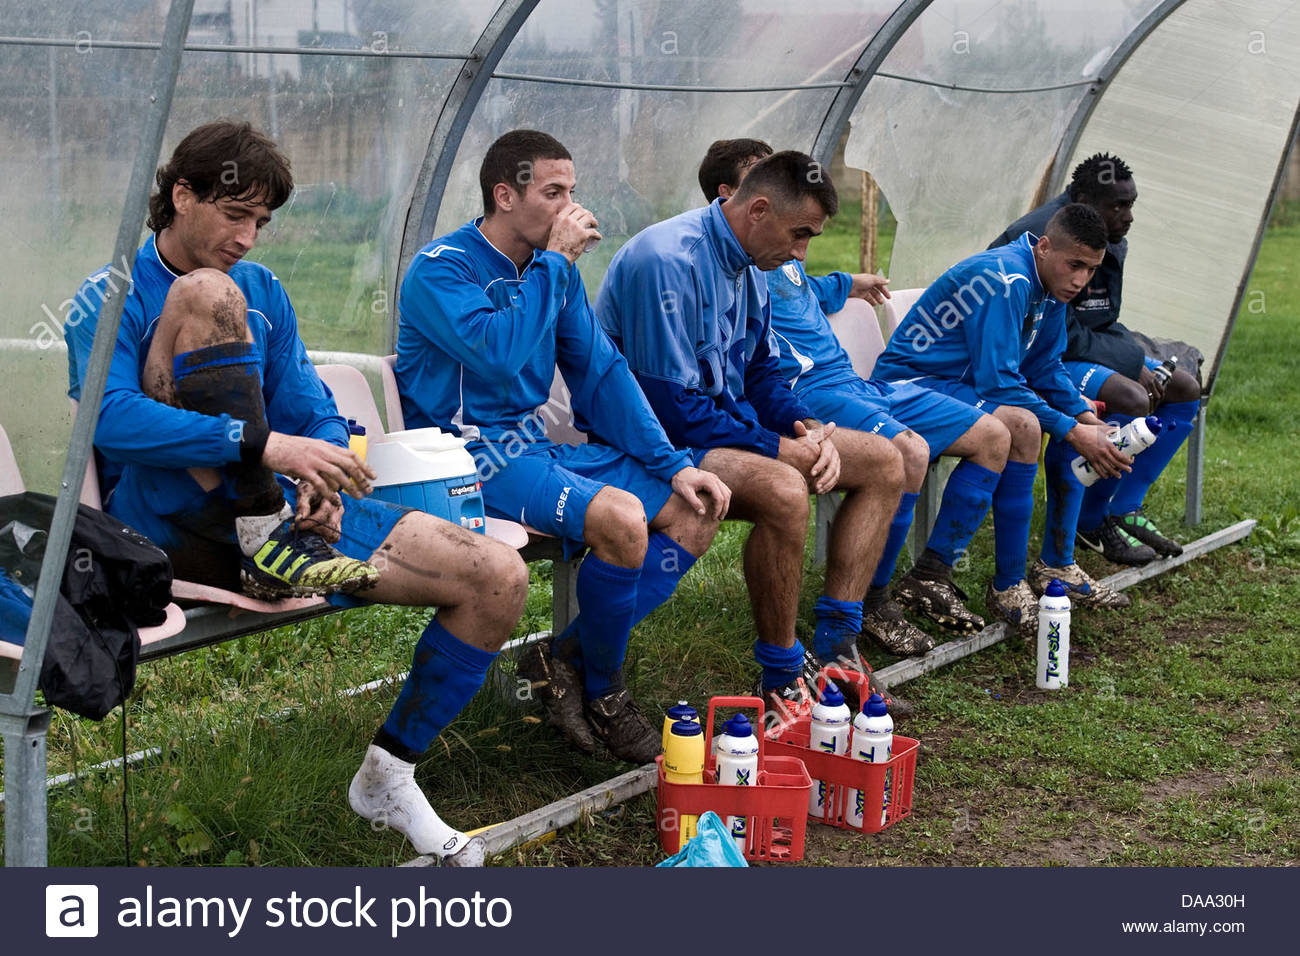 players on the sidelines - Stock Image